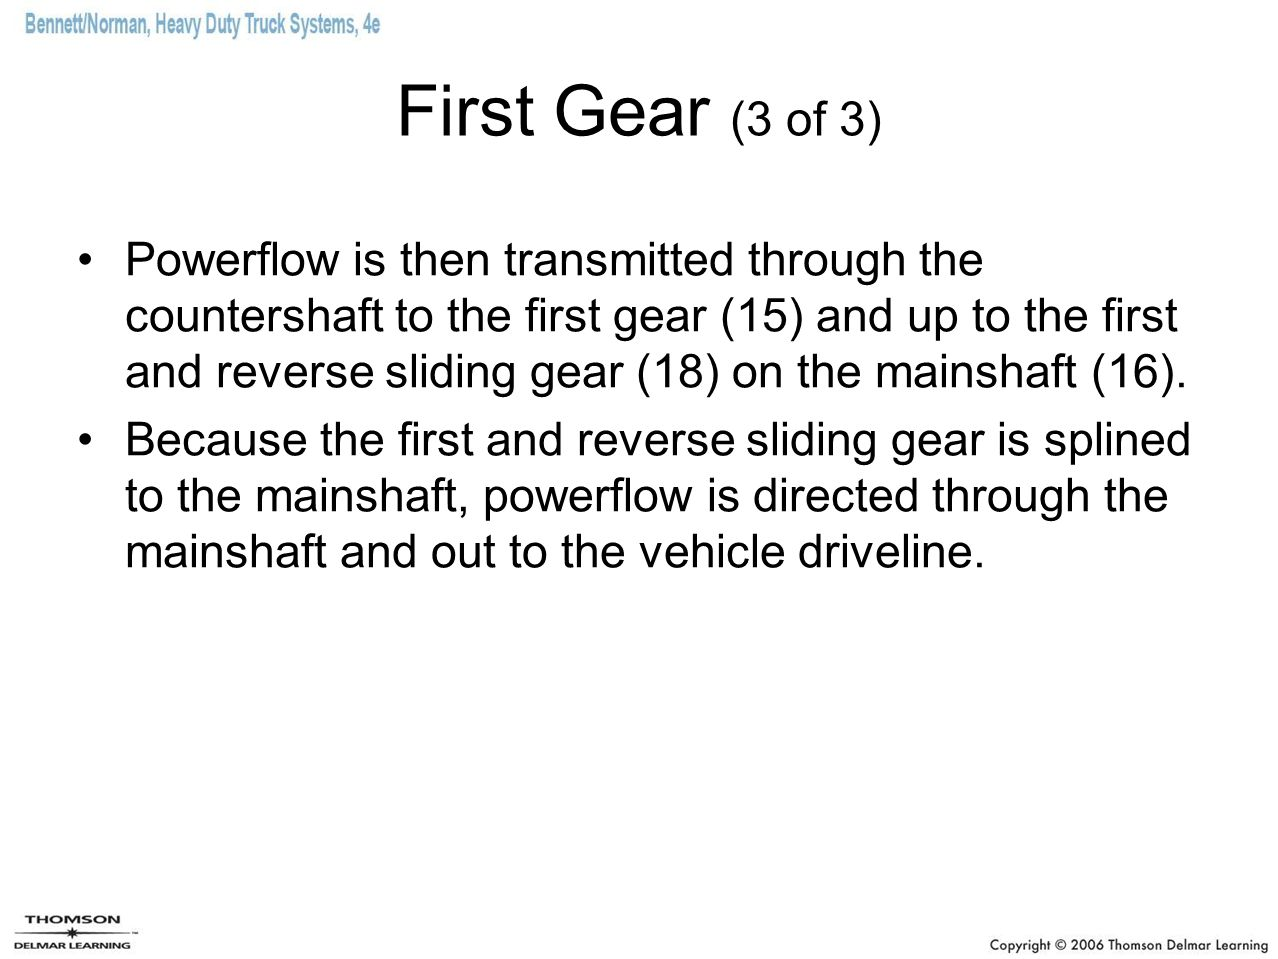 First Gear (3 of 3)